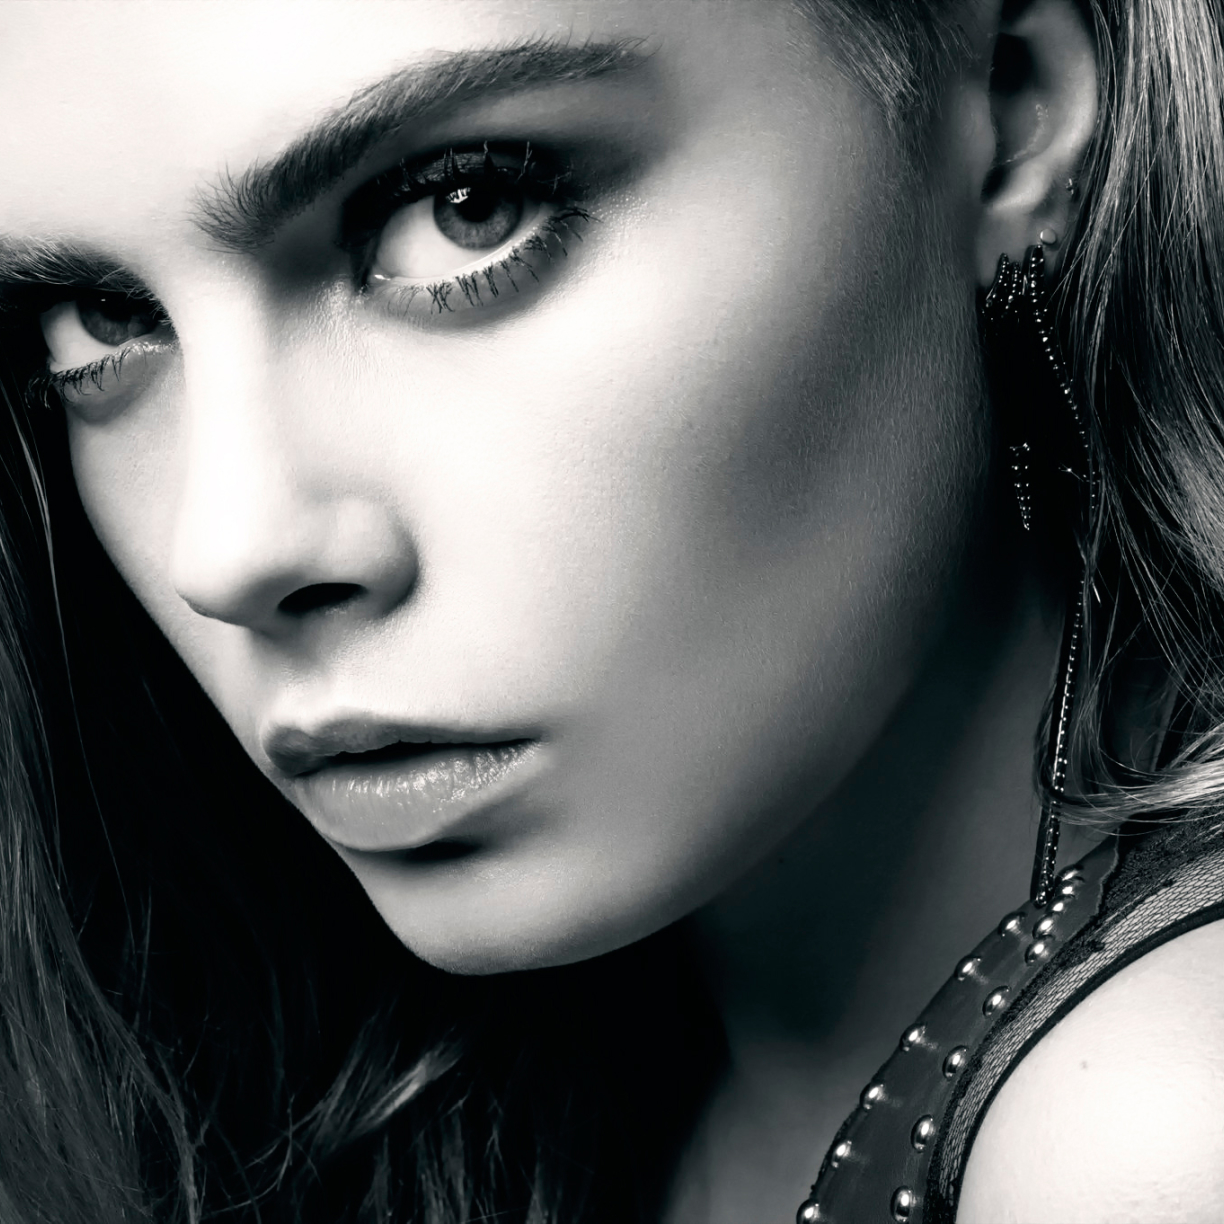 Hot cara delevingne black and white full hd 2k wallpaper - Cara delevingne iphone wallpaper ...